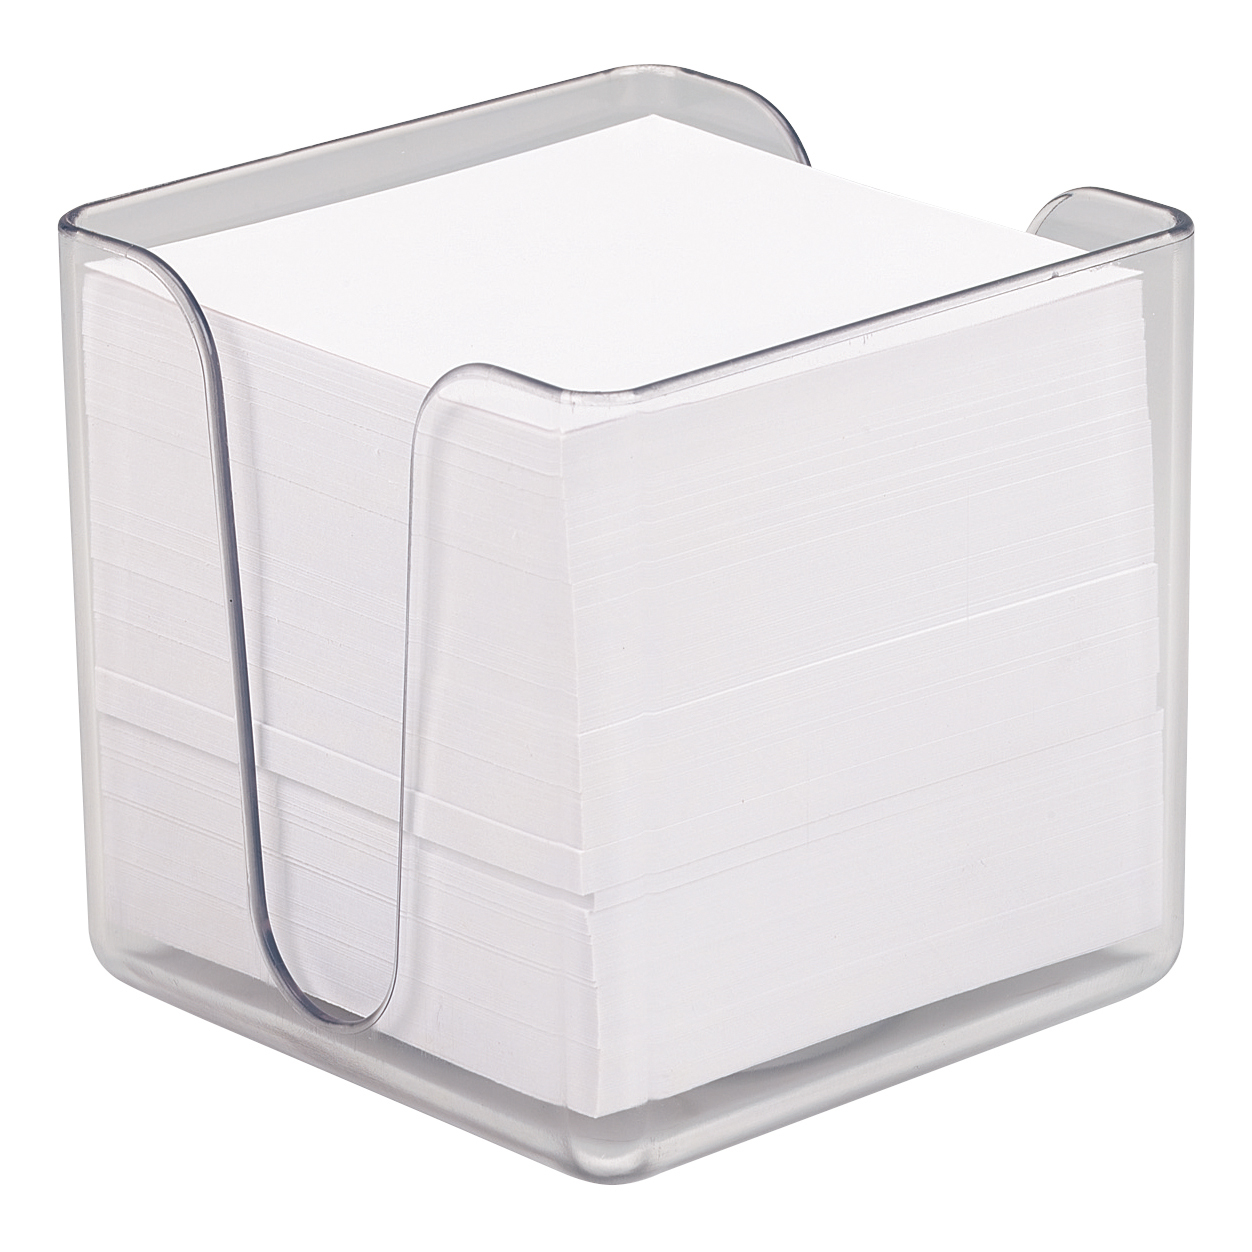 Desk Tidies 5 Star Office Noteholder Cube Transparent with Approx. 750 Sheets of Plain Paper 90x90mm White